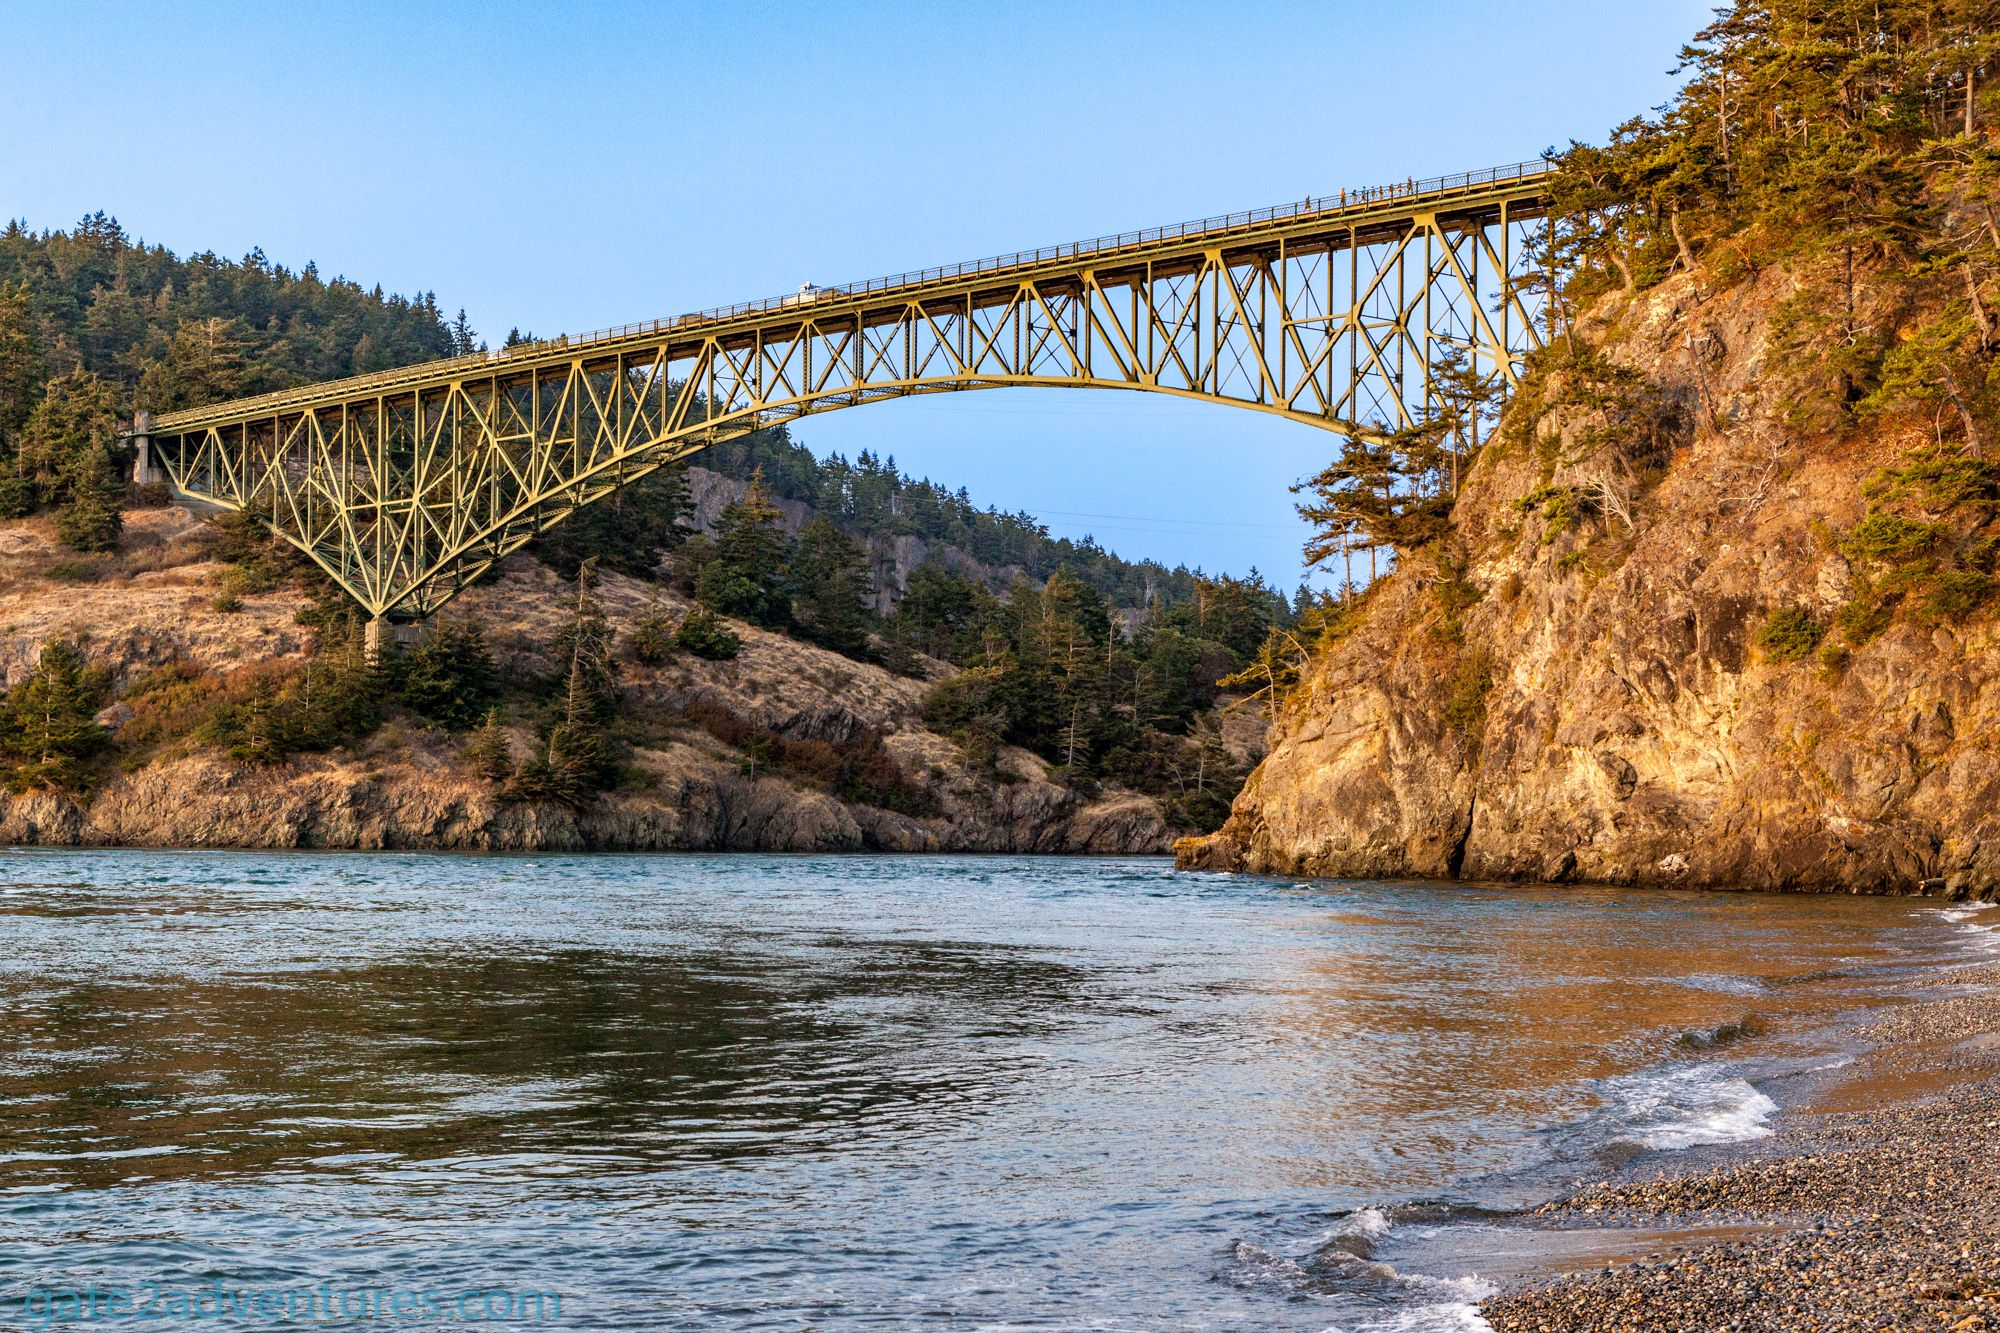 8+ Photos That Will Make You Want to Visit the Deception Pass Bridge